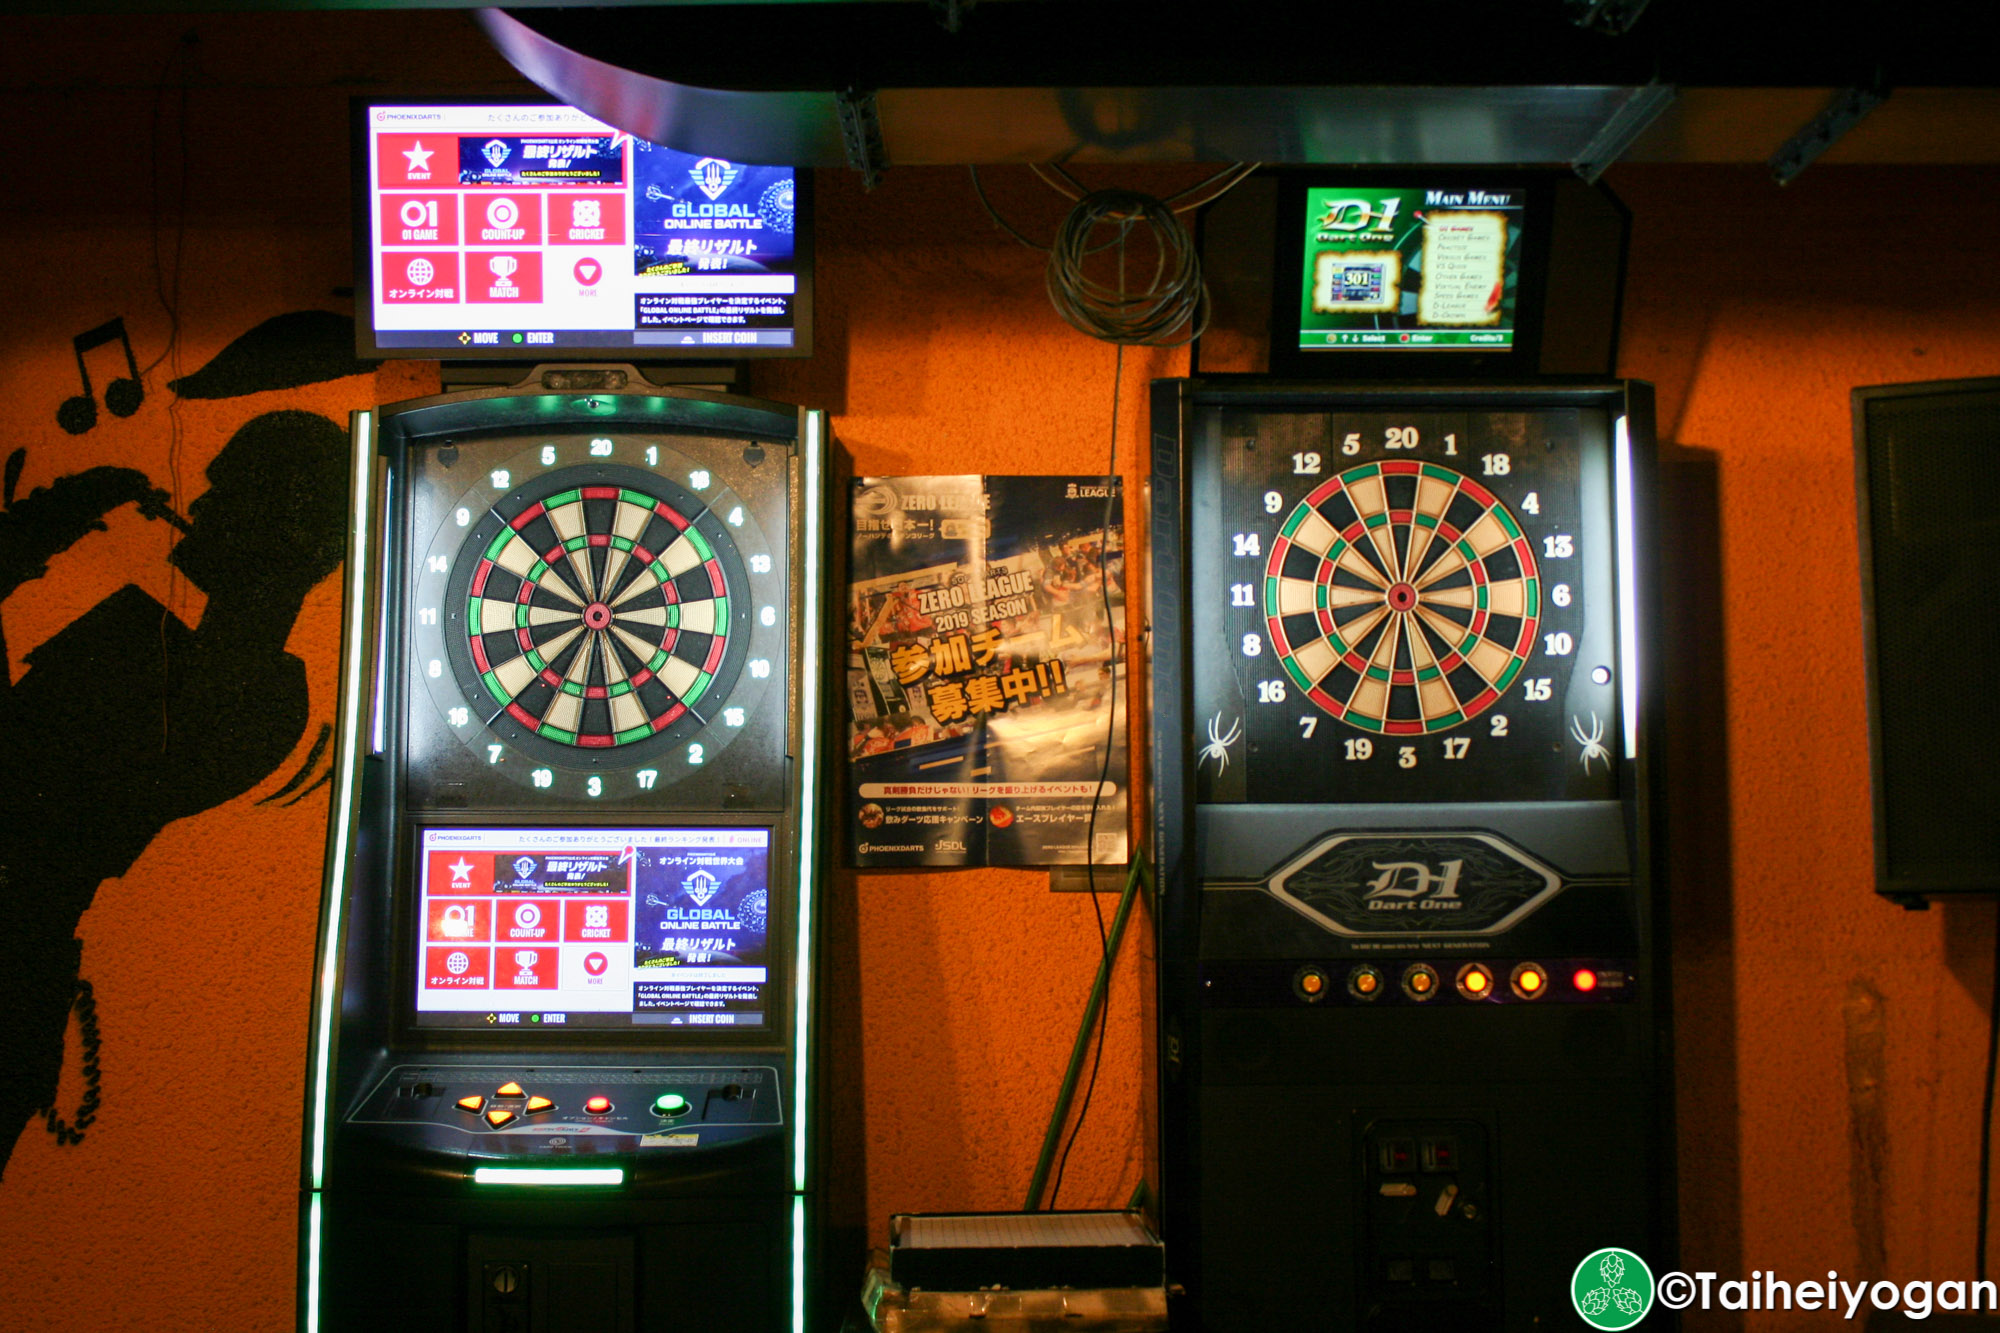 The Vault - Interior - Dart Board